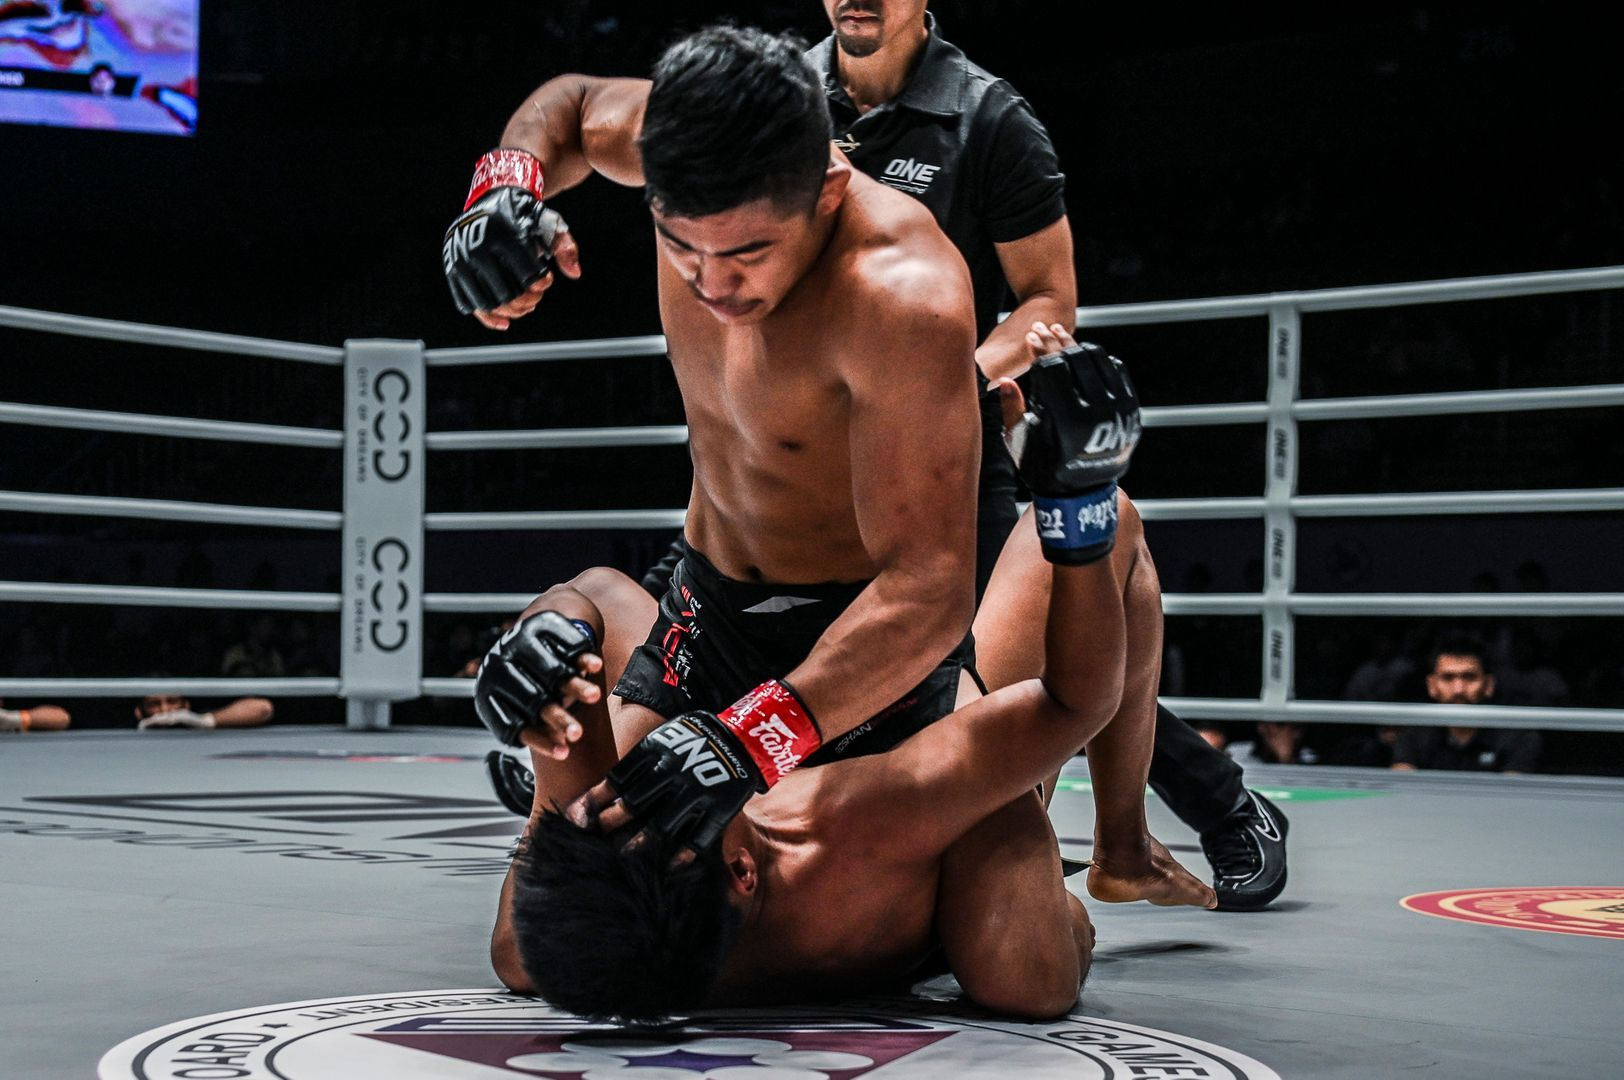 After Watching Father Battle Ailments, Roshan Mainam Turned To Healthy Lifestyle Of Combat Sports - Roshan Mainam